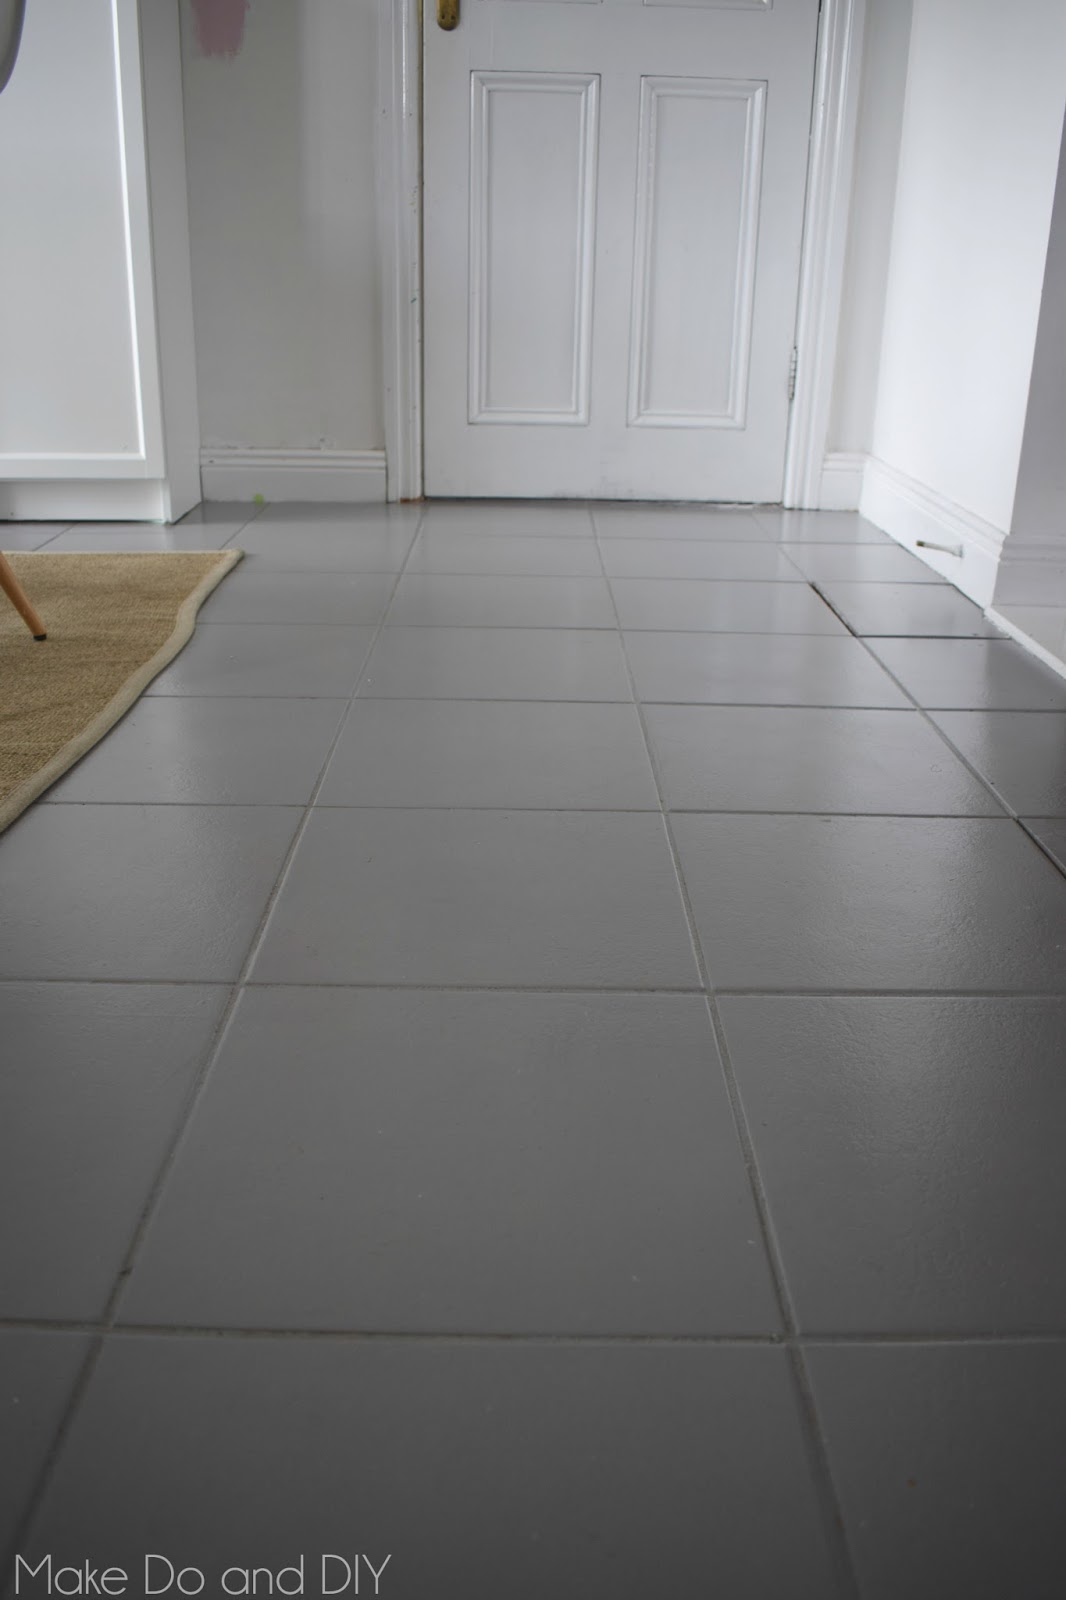 Painting a tiled floor